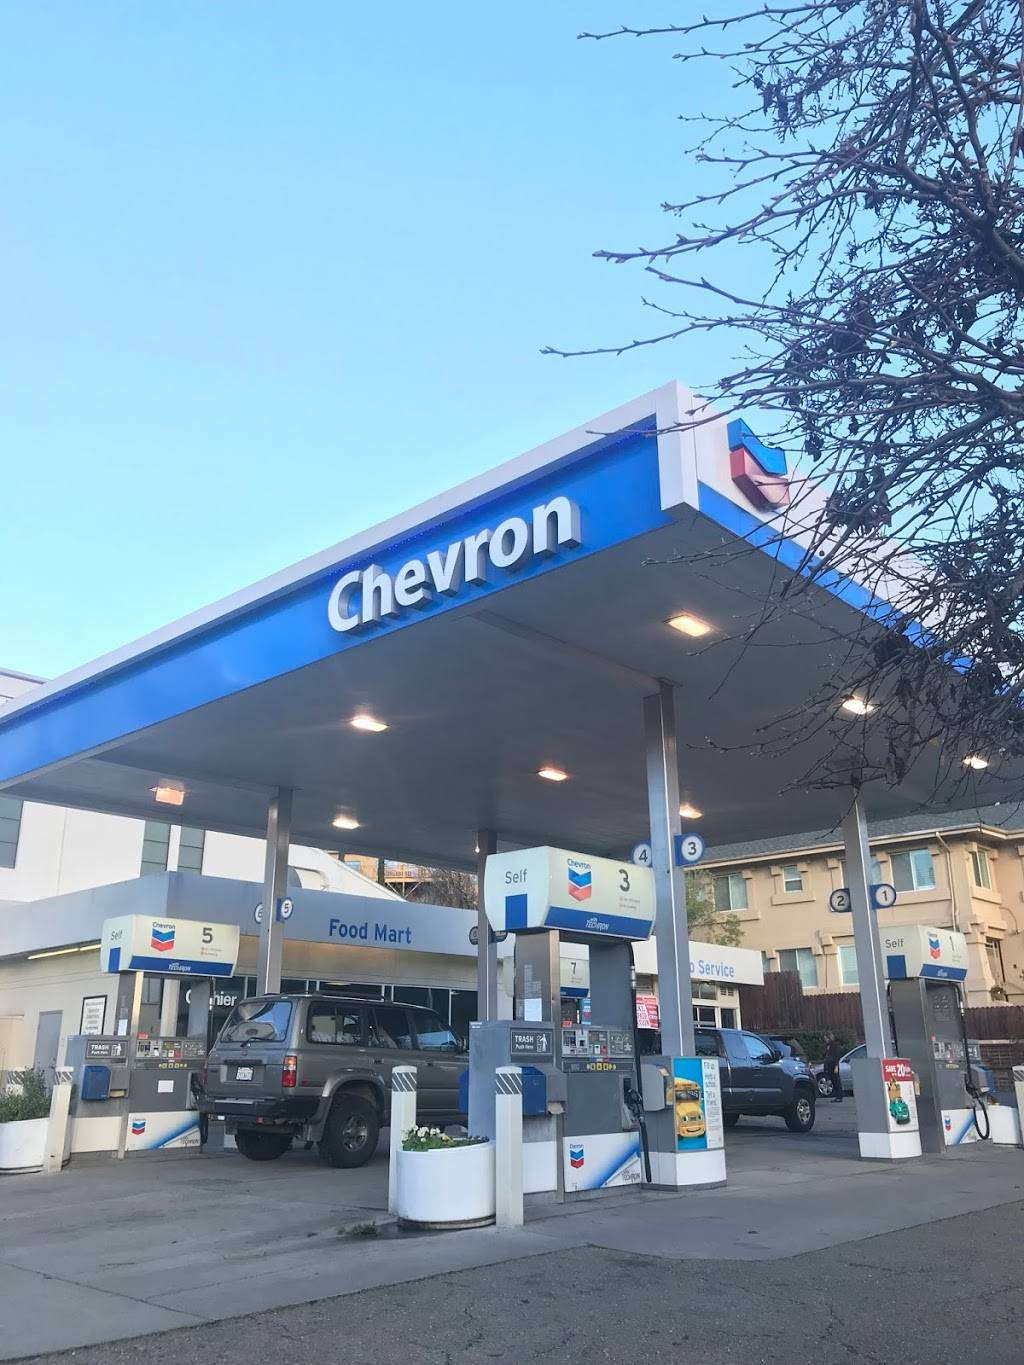 Betts Lakeshore Chevron - gas station  | Photo 3 of 4 | Address: 3500 Lakeshore Ave, Oakland, CA 94610, USA | Phone: (510) 465-1761